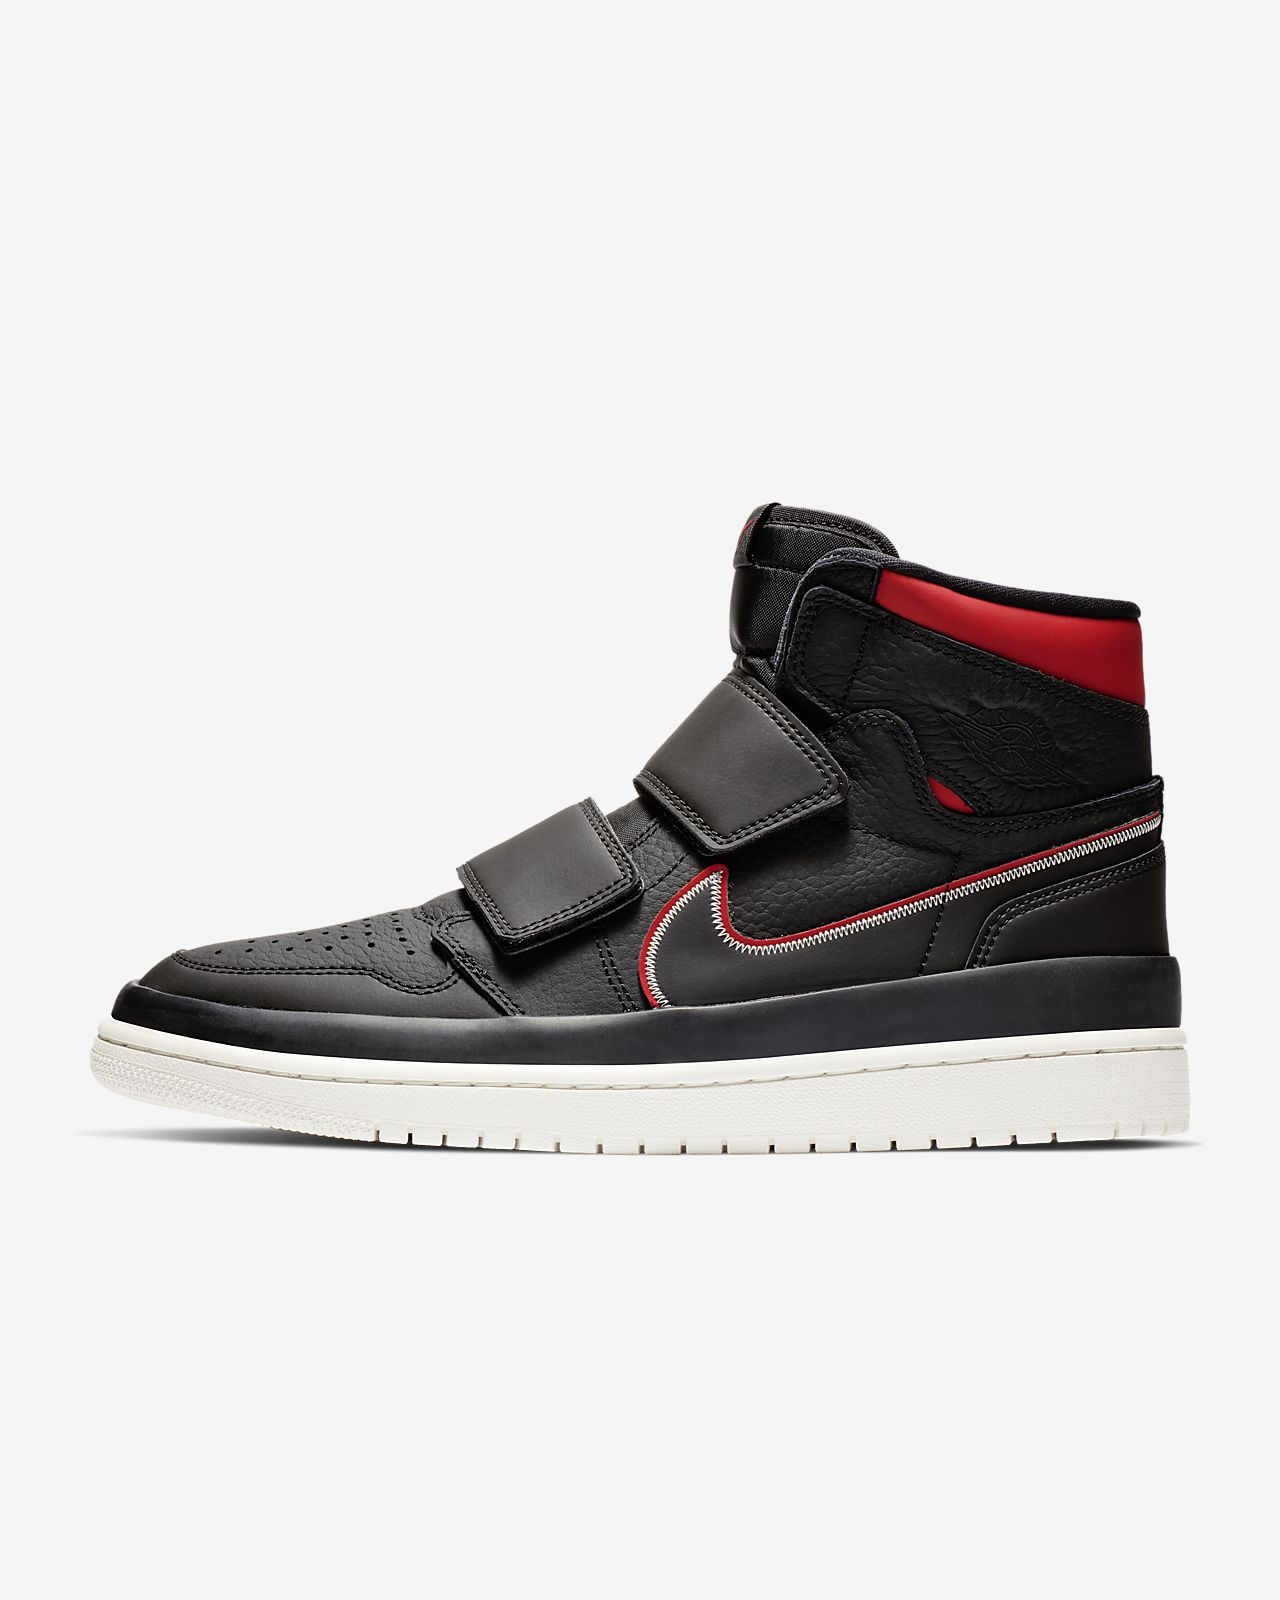 caa27d2daab Air Jordan 1 Retro High Double Strap Men's Shoe. Nike.com